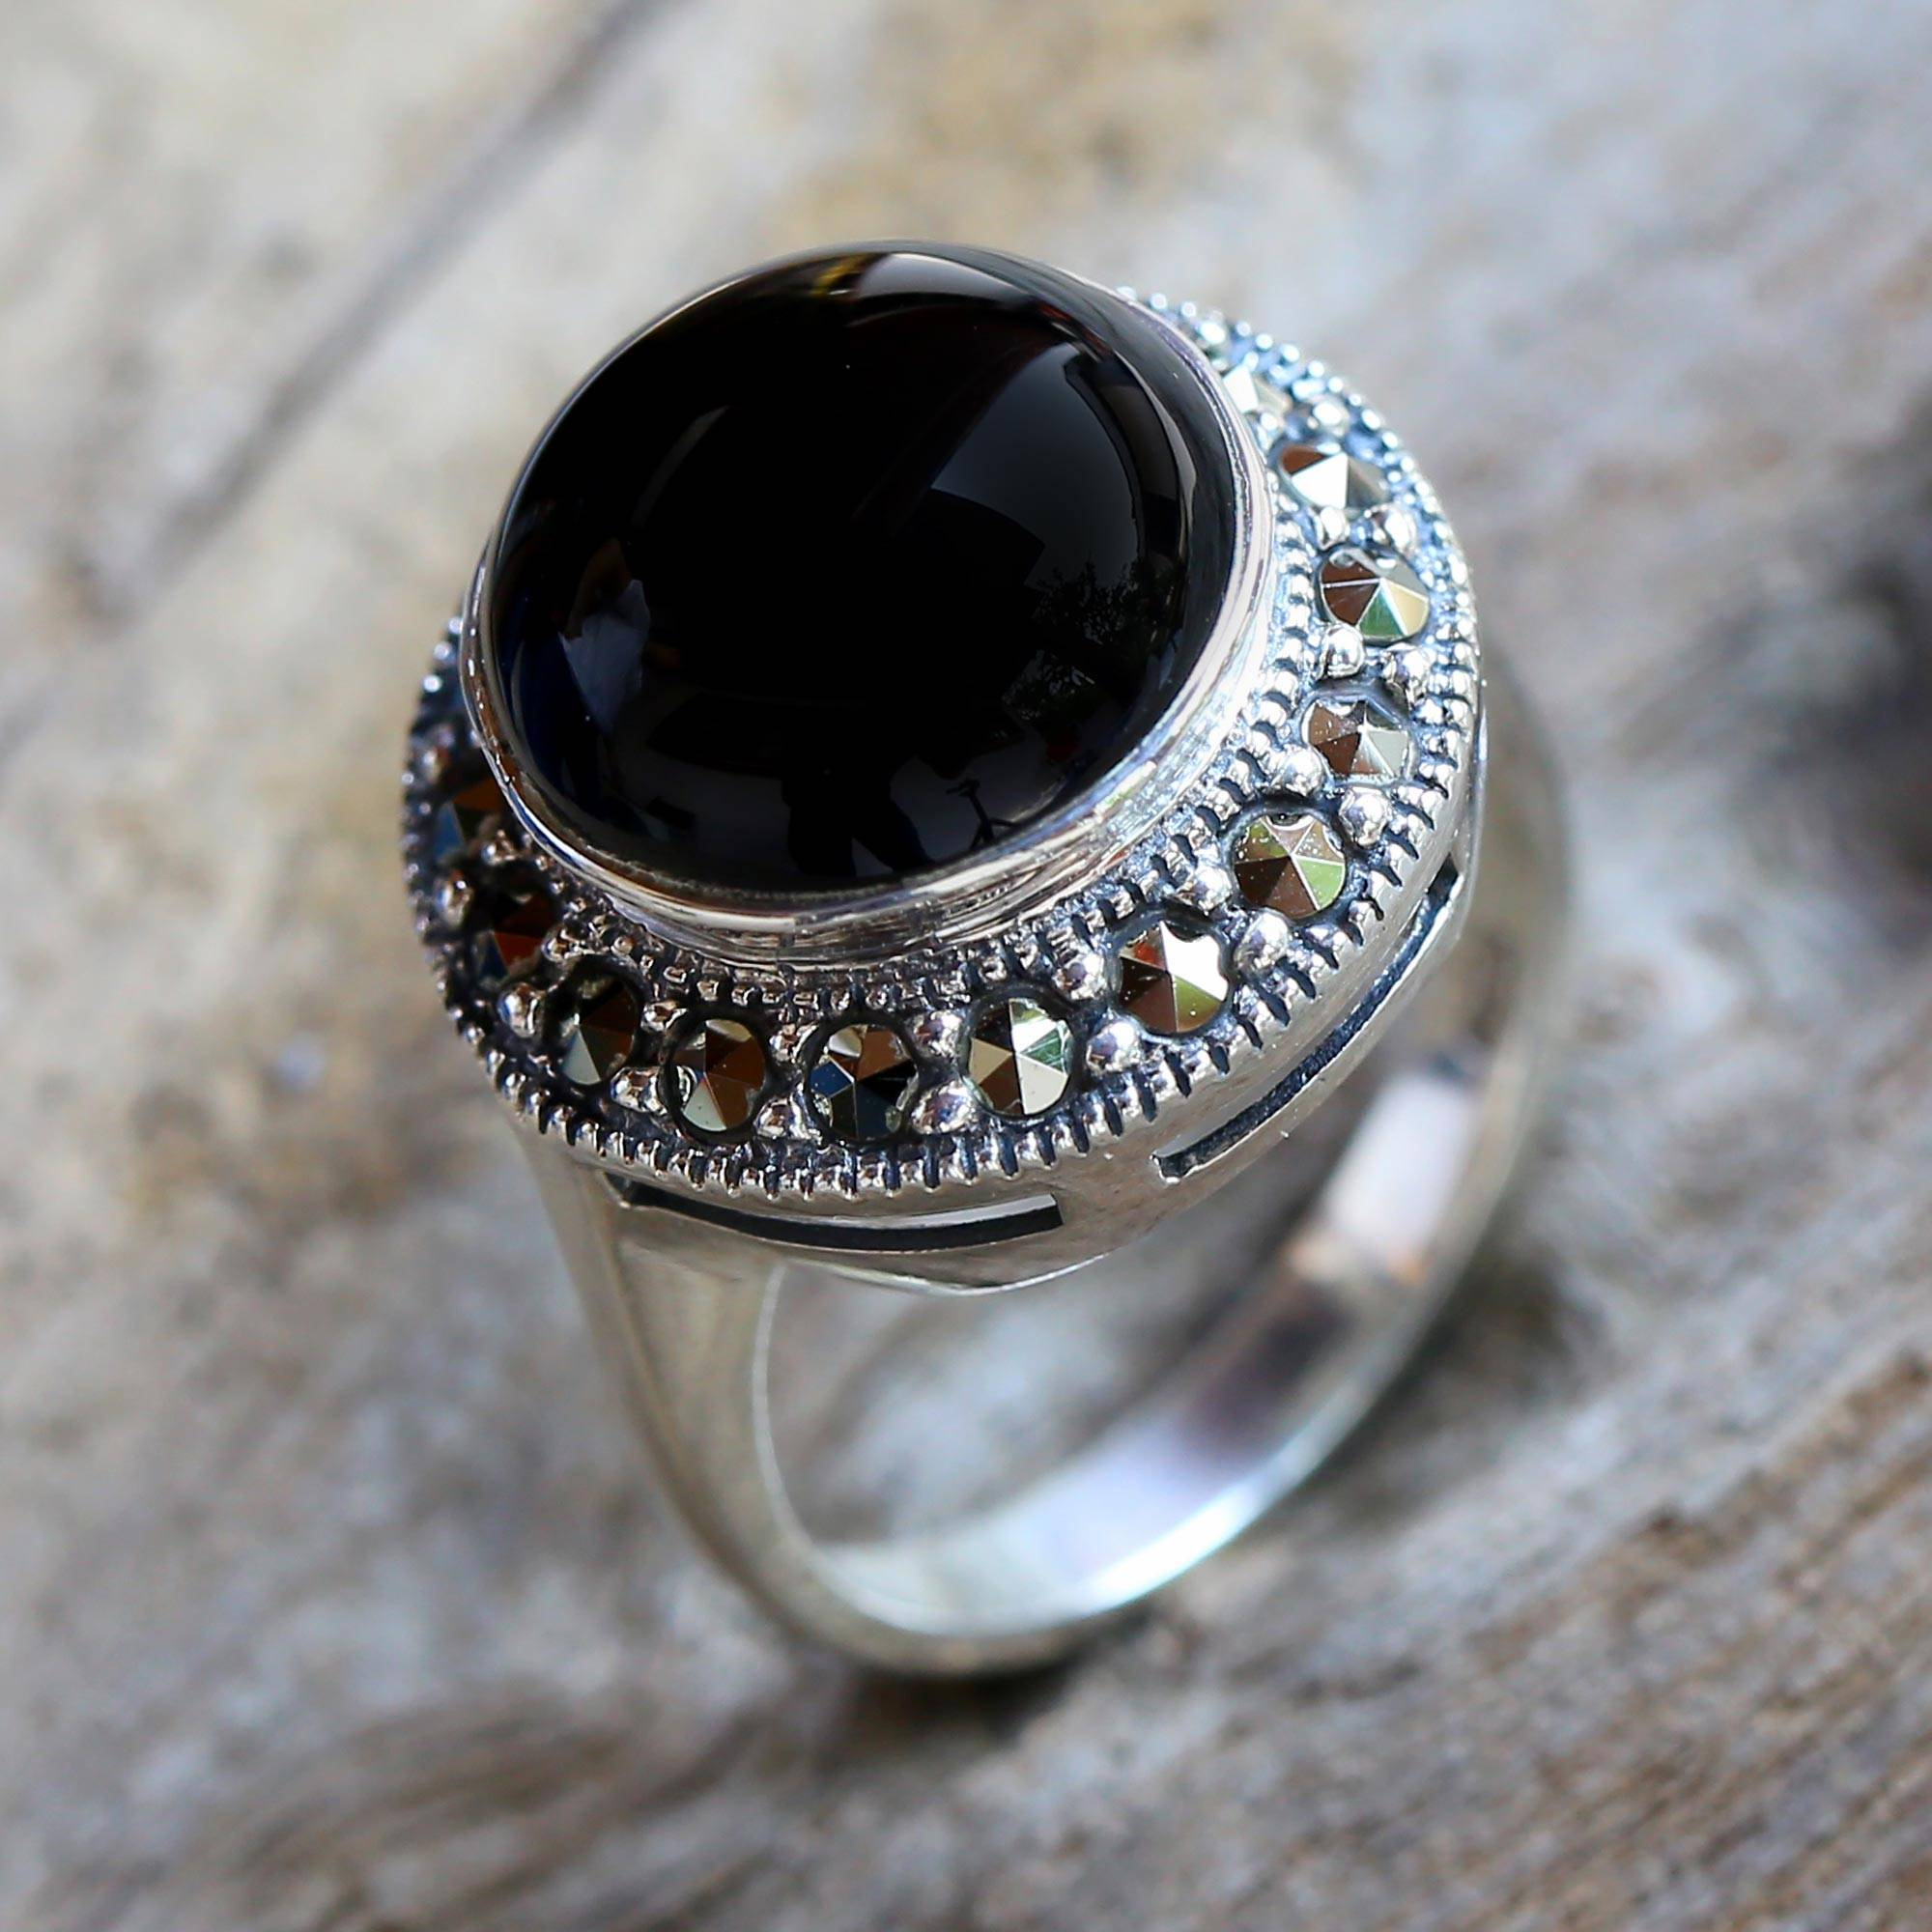 stamped black onyx ring ringfine statement solid set objects sold co wedding plaque in jewelry fine product gold beveled rings midwest art d signet